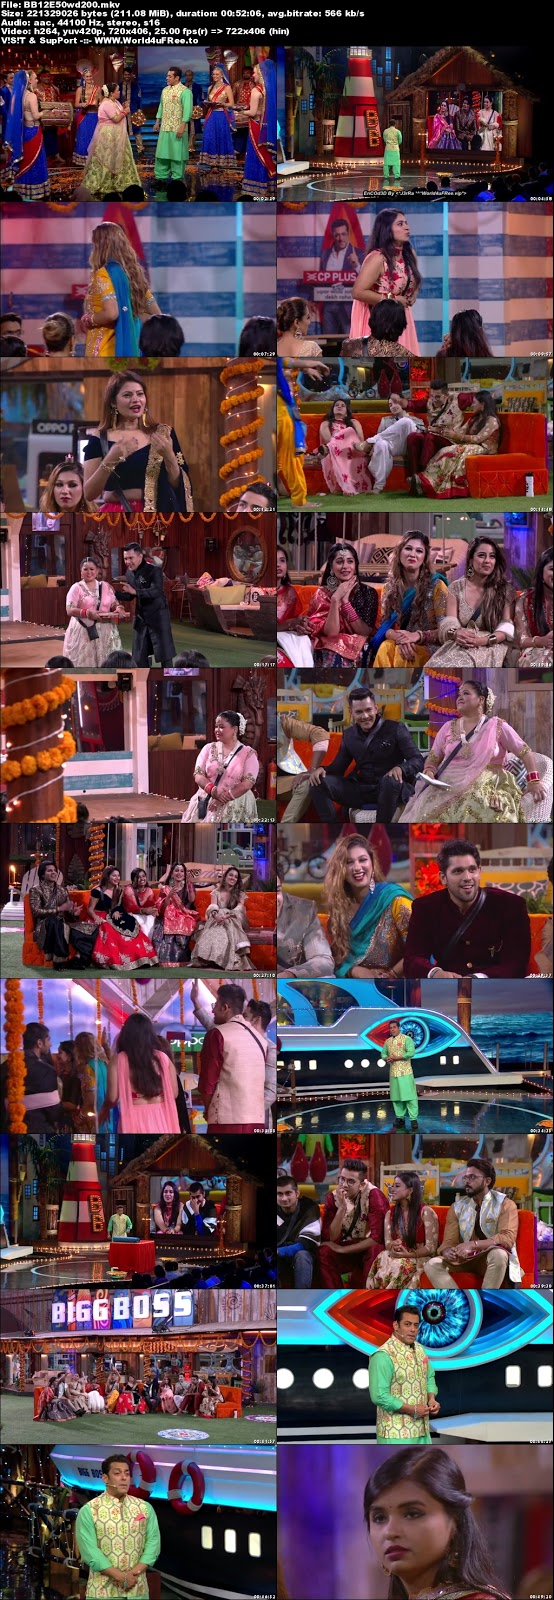 Bigg Boss 12 Episode 49 04 November 2018 WEBRip 480p 200Mb x264 world4ufree.fun tv show Episode 49 04 November 2018 world4ufree.fun 200mb 250mb 300mb compressed small size free download or watch online at world4ufree.fun